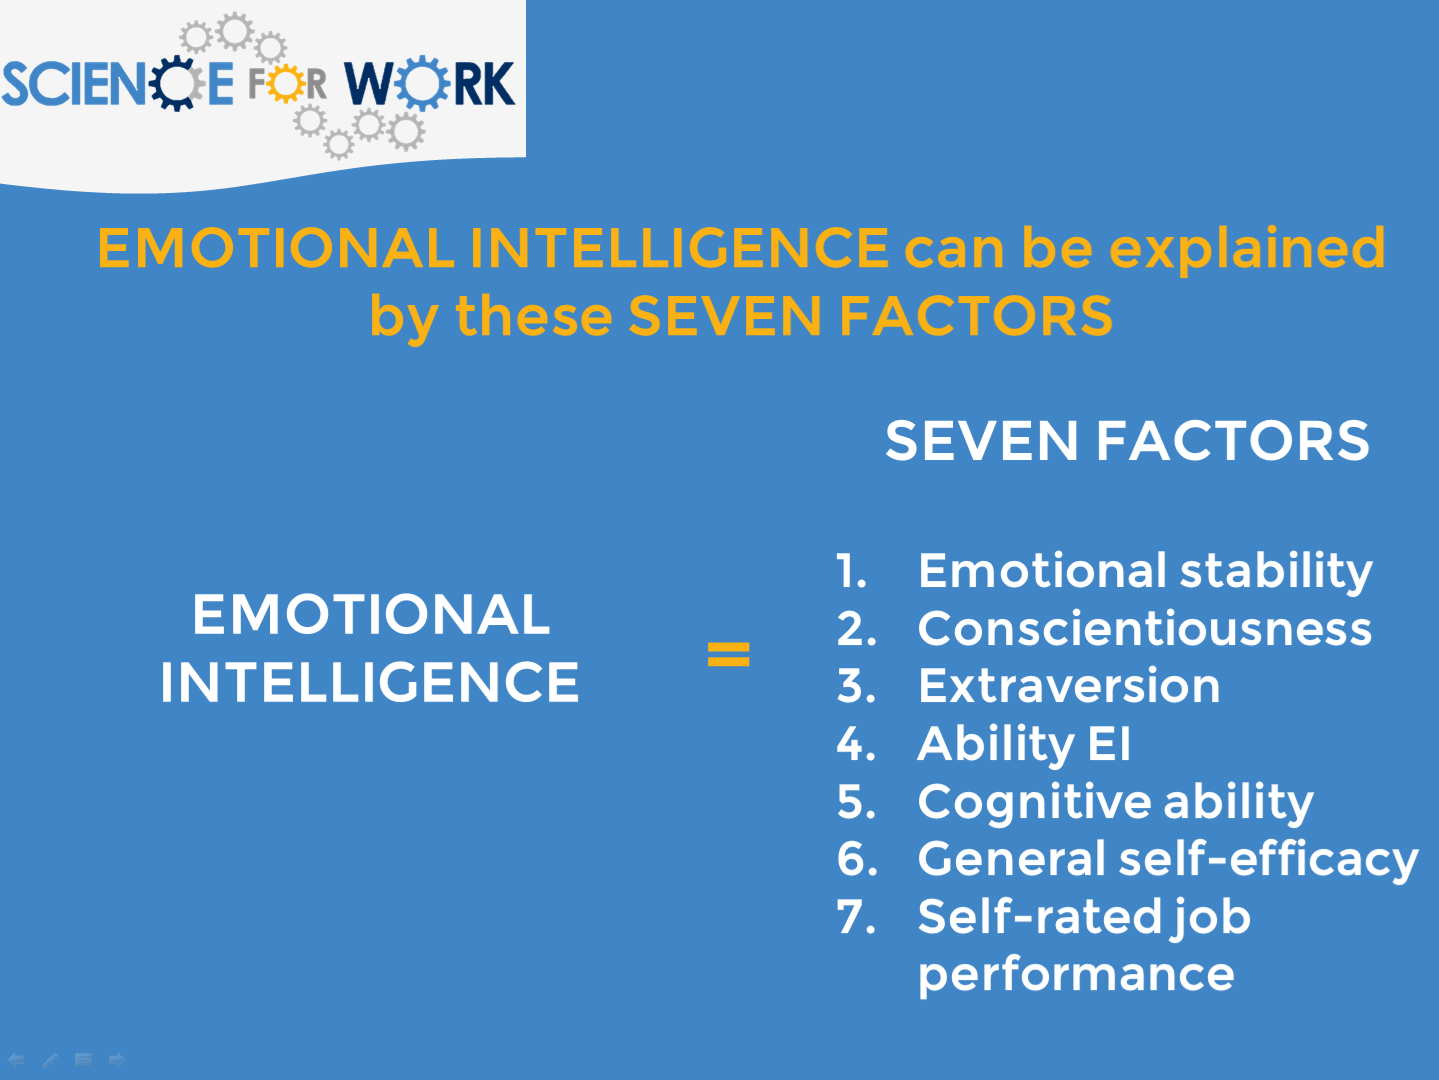 emotional intelligence can predict performance